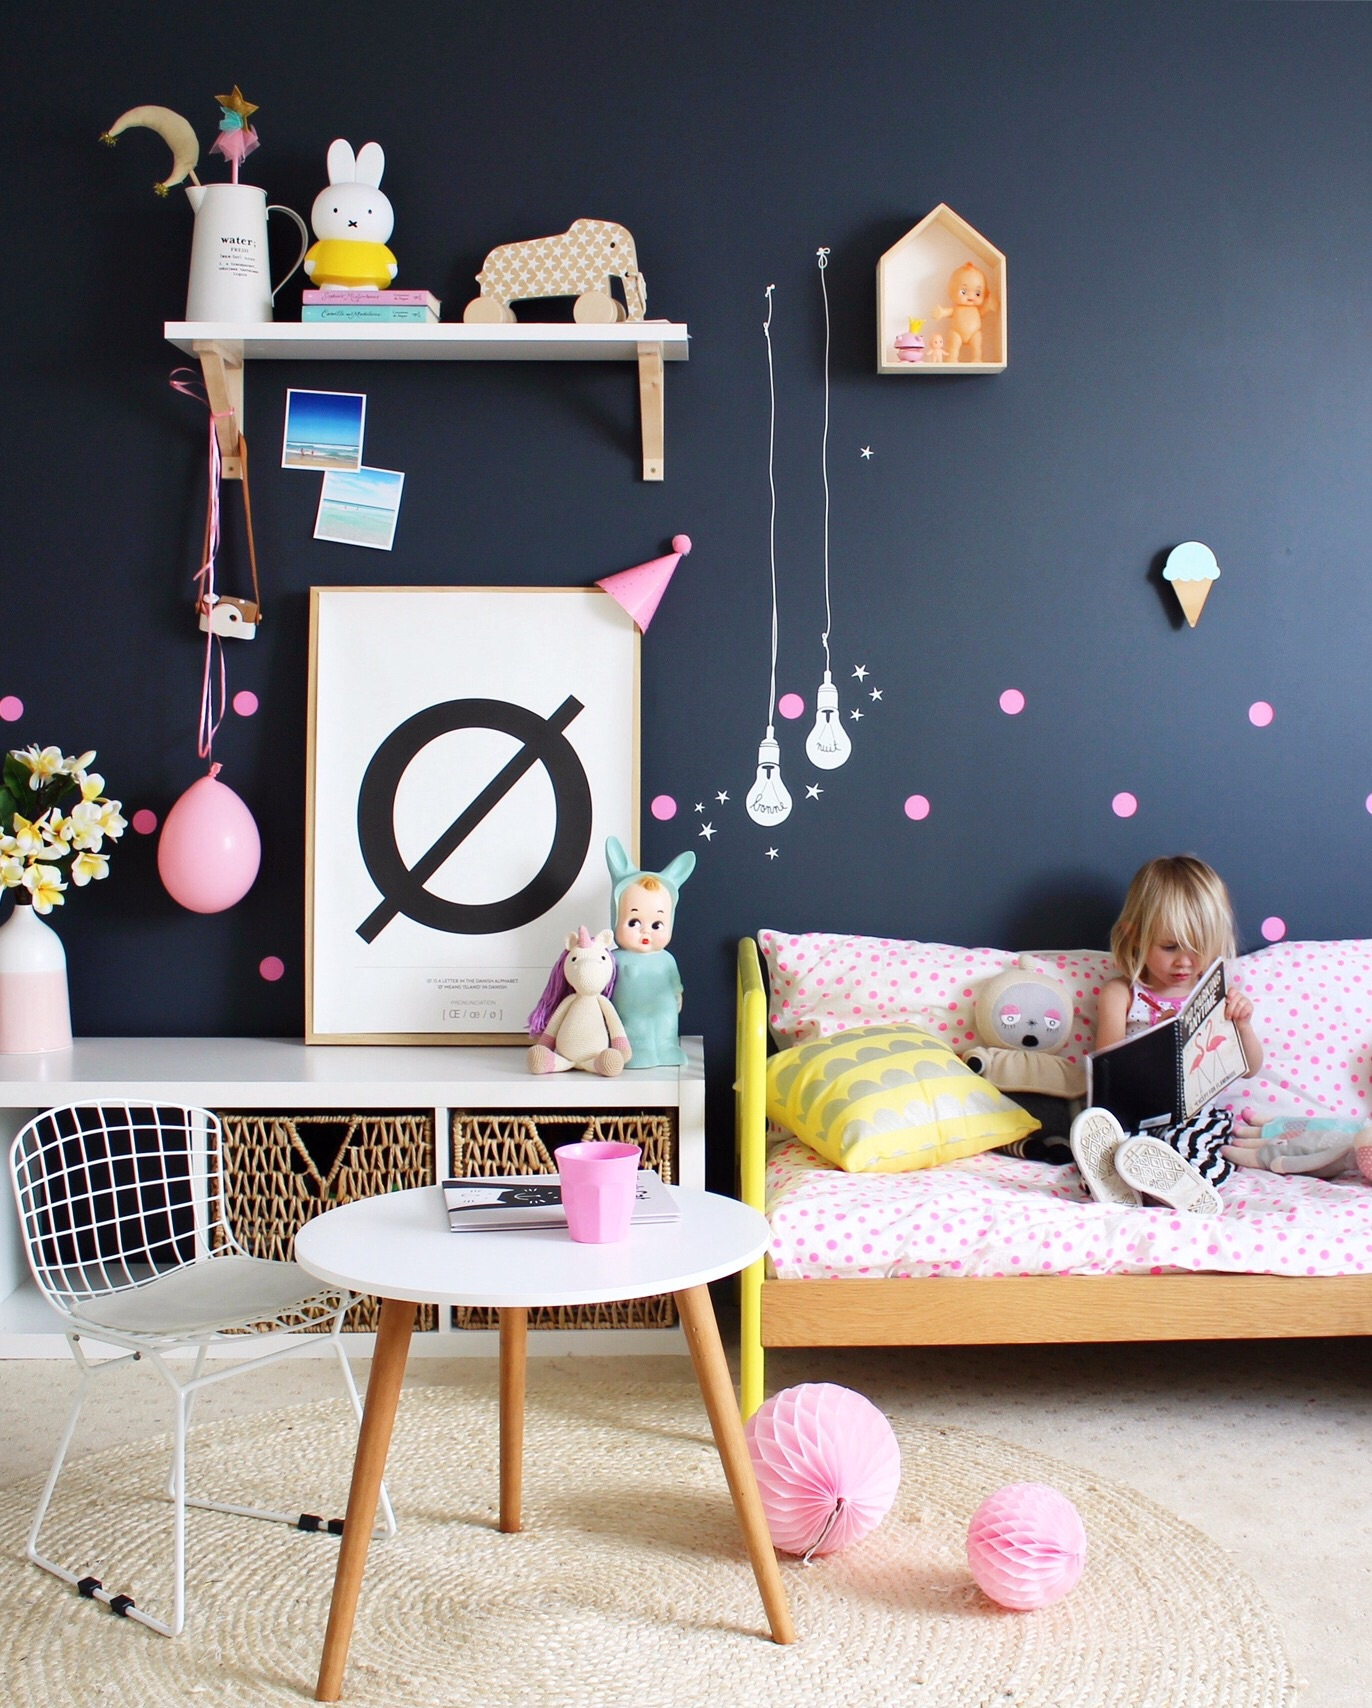 Kids' bedroom ideas - interiors and decor